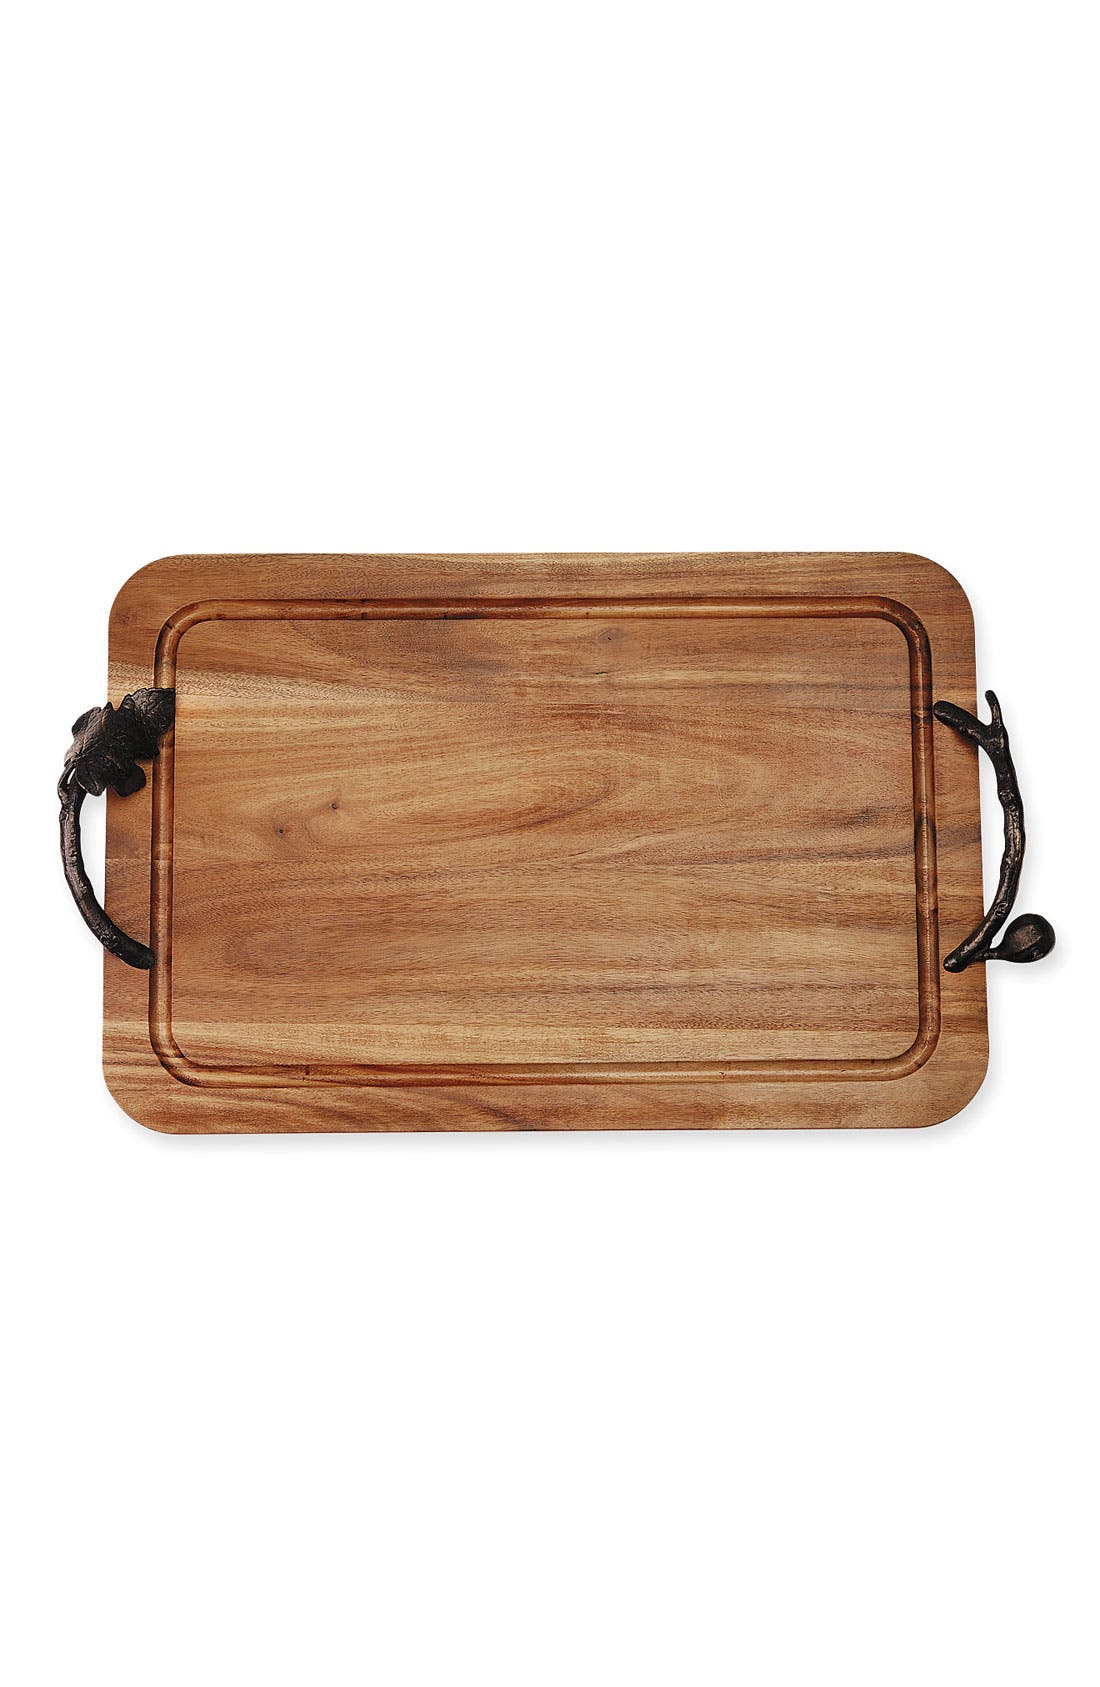 Alternate Image 1 Selected - Michael Aram 'Fig Leaf' Carving Board